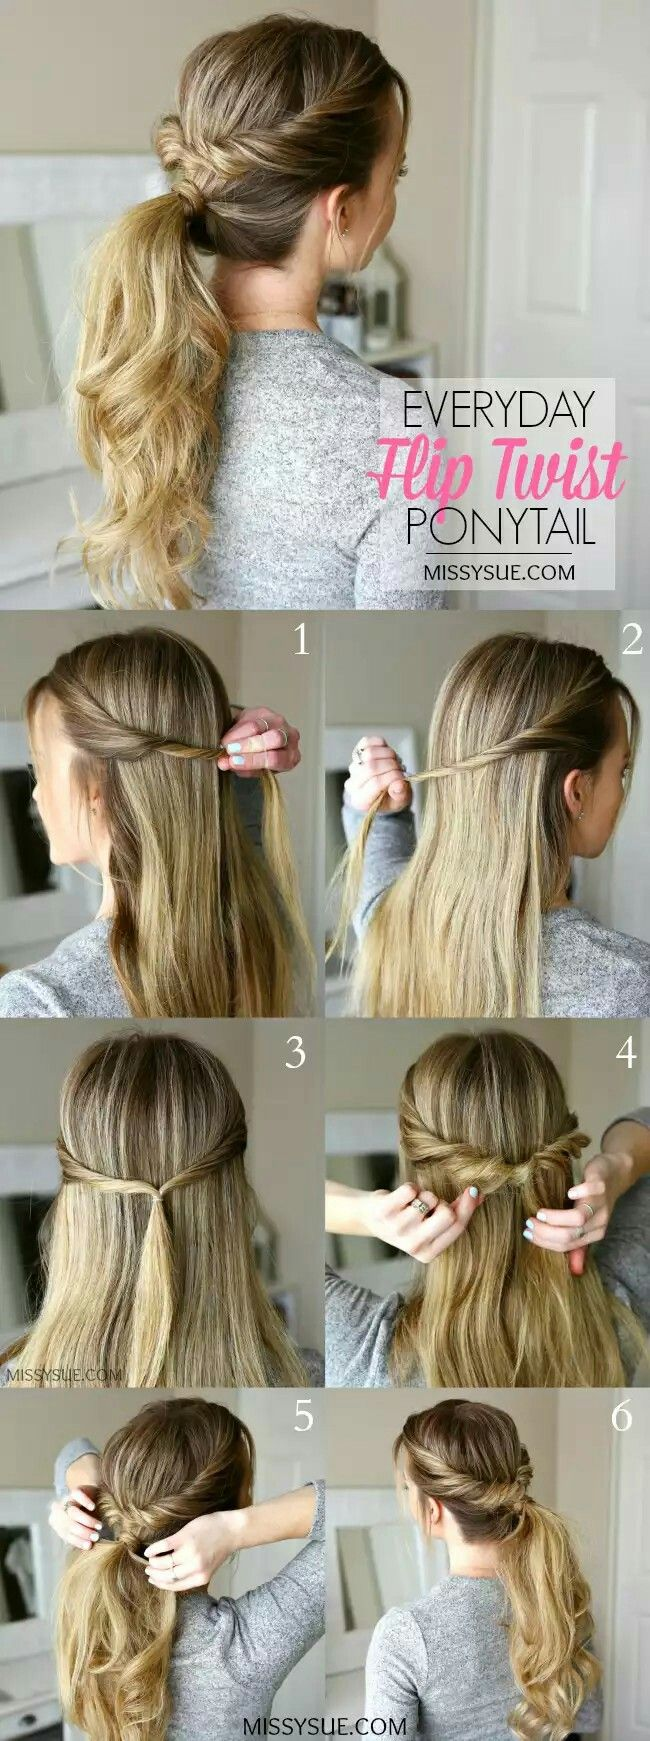 Ium probably going to try this itus cute simple and looks easy